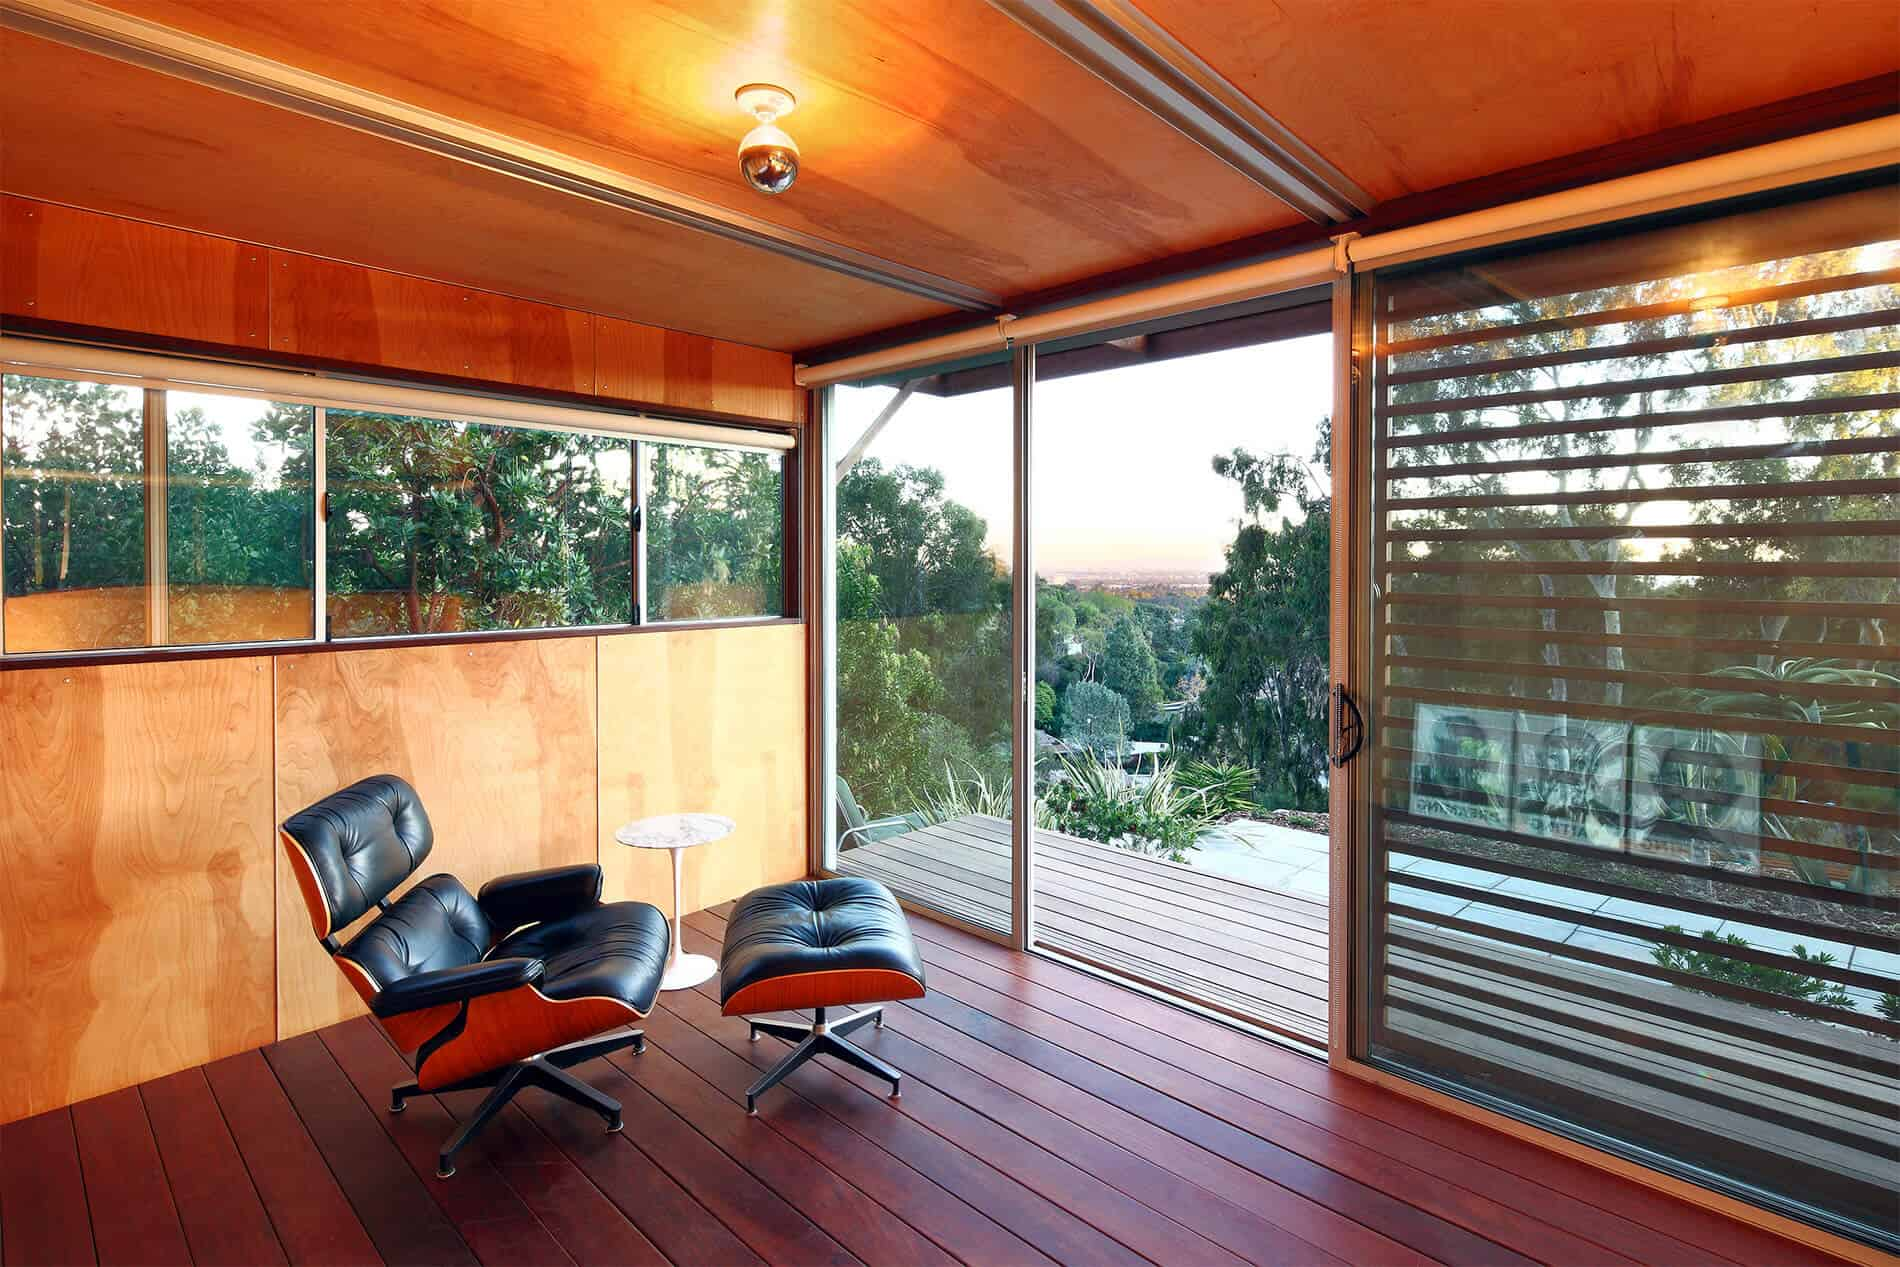 Interior decked out in rich red wood flooring with lighter natural wood walls and ceiling, full glass view of outdoors with shade slats.